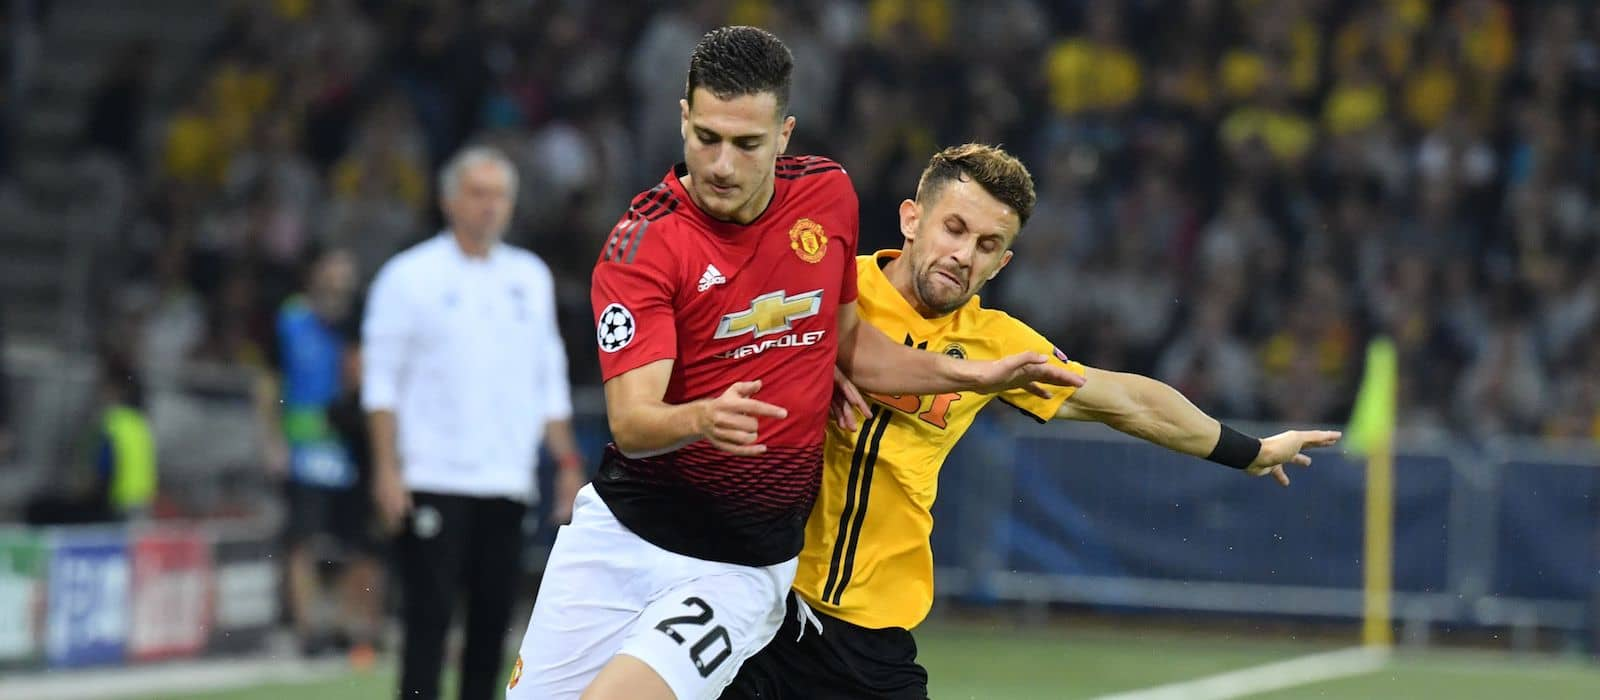 Manchester United fans react to news of potential Diogo Dalot sale